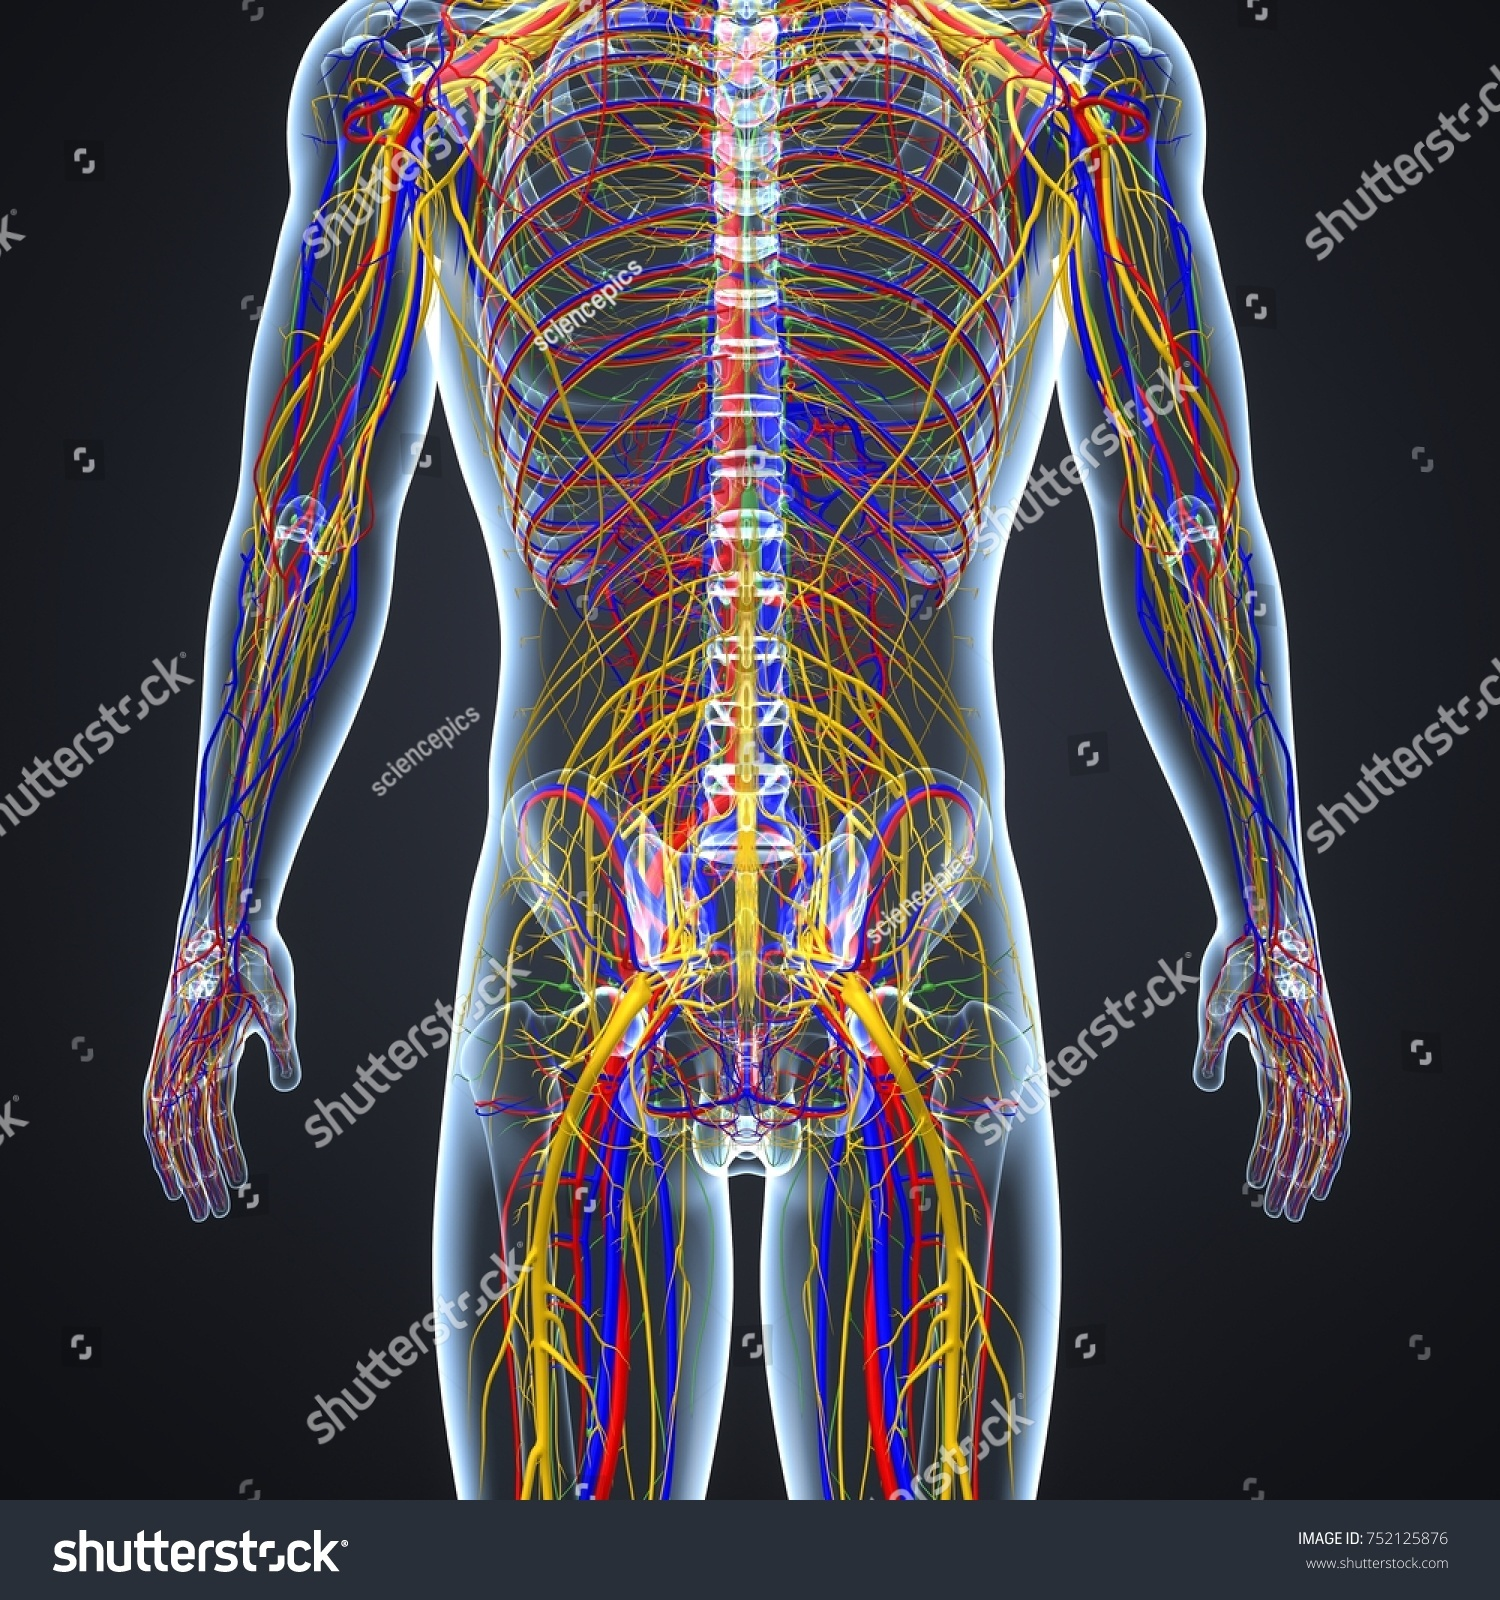 Body Arteries Veins Nerves Lymph Nodes Stockillustration 752125876